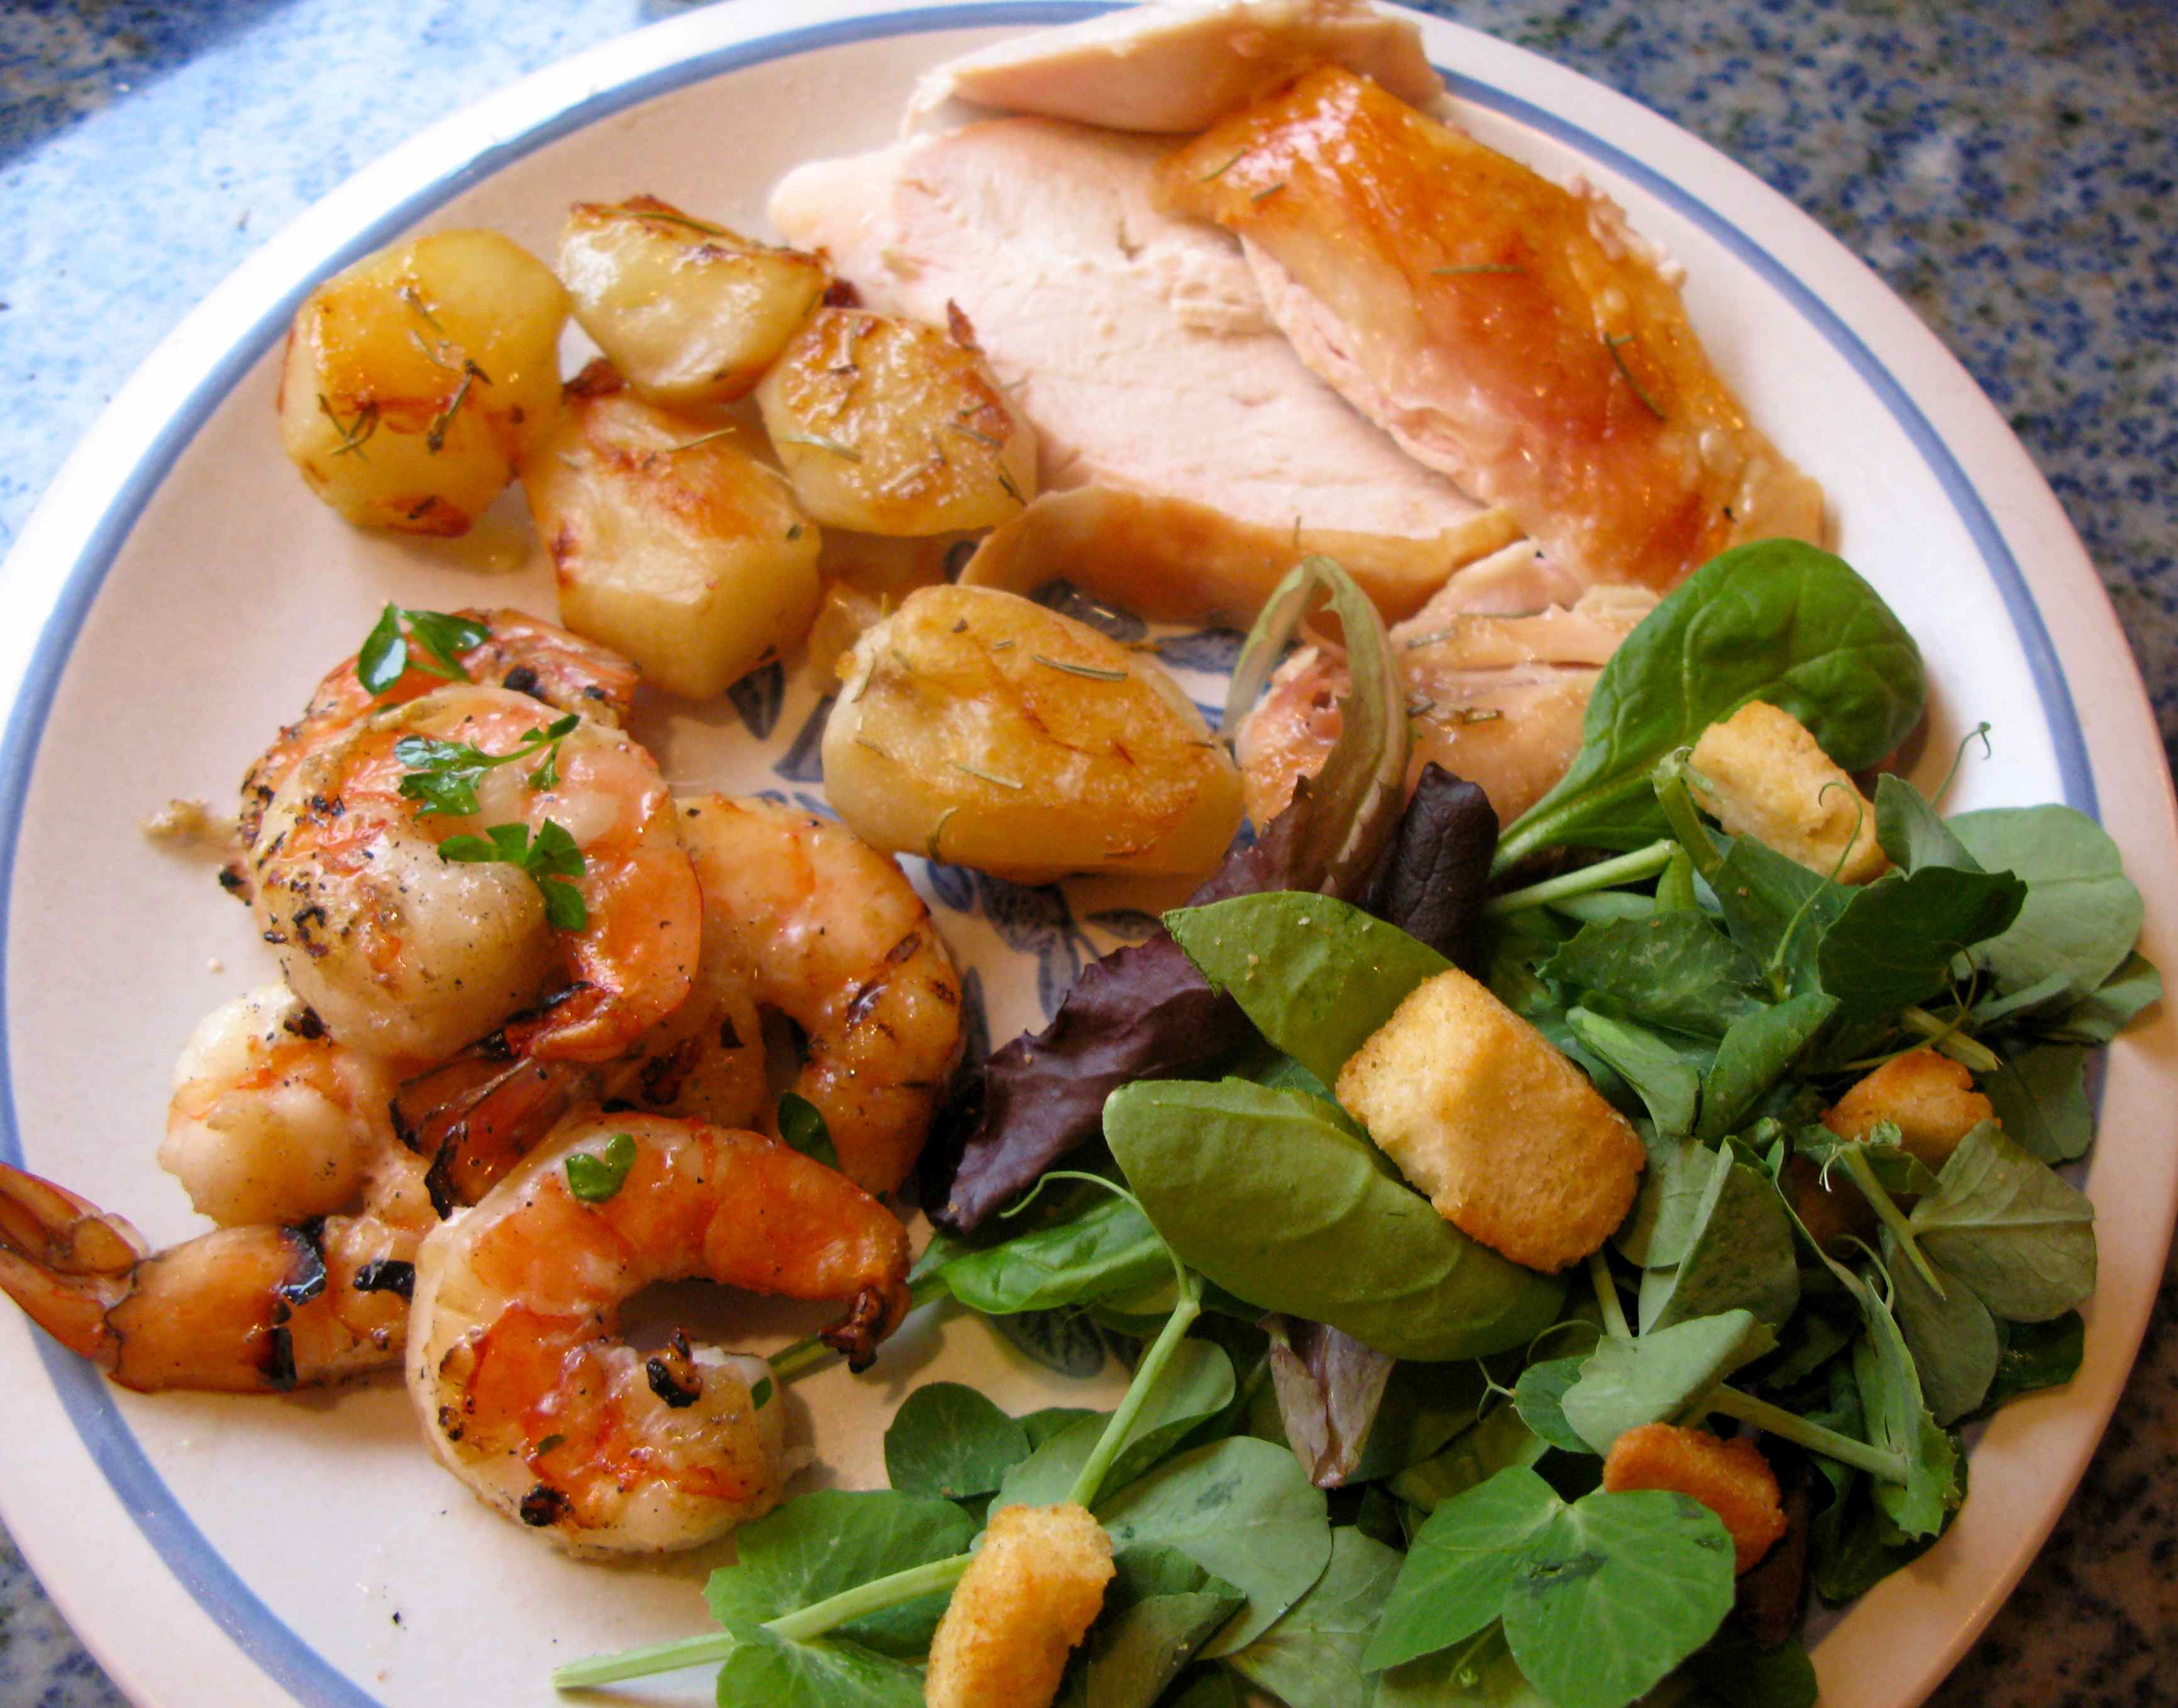 The combination of roasted chicken, barbecued shrimp, roast potatoes and fresh salad sends this dinner over the edge.